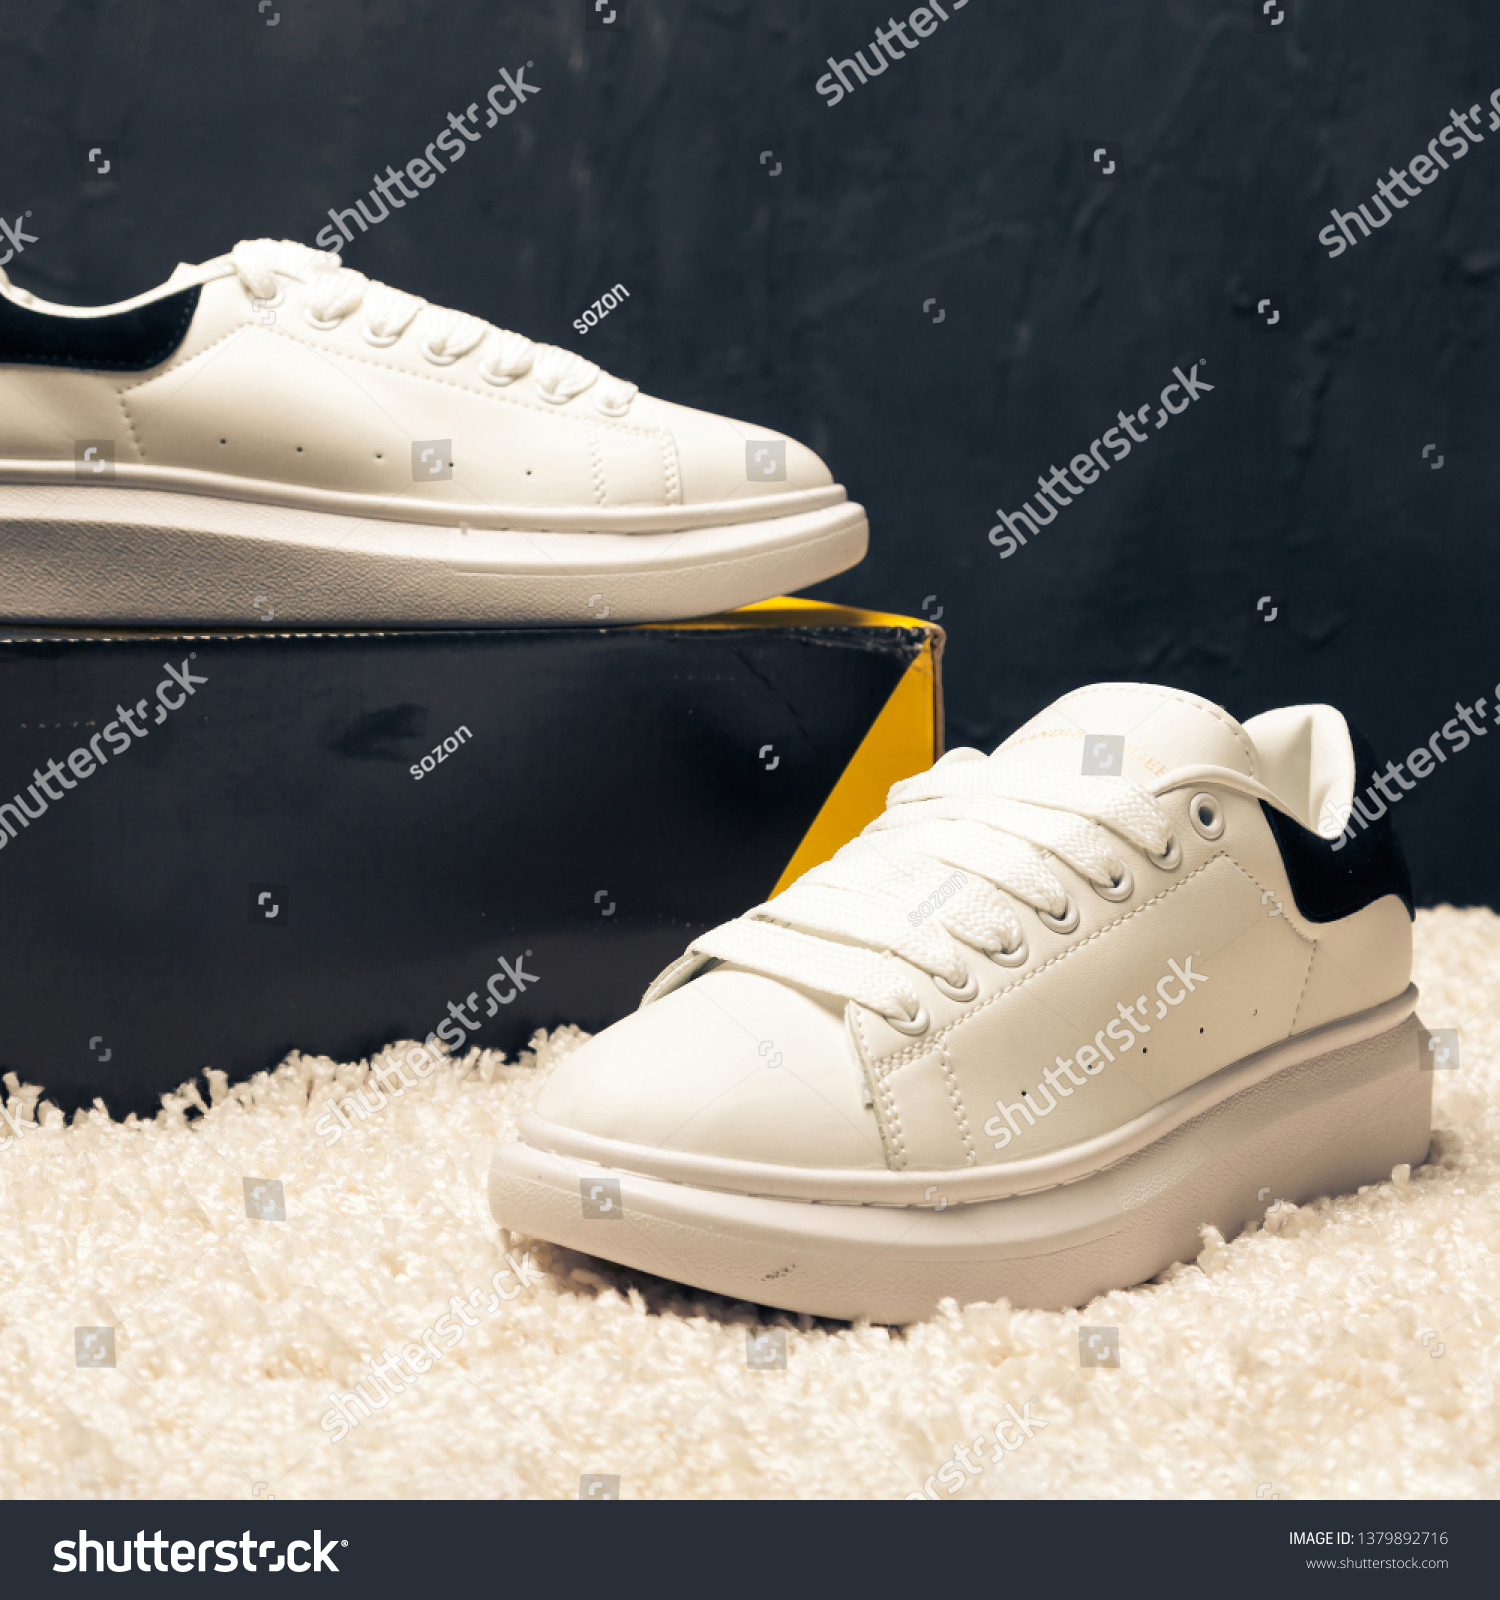 Chillido Competir Talla  New Beautiful Colorful Nice Adidas Mcqueen Stock Photo (Edit Now) 1379892716